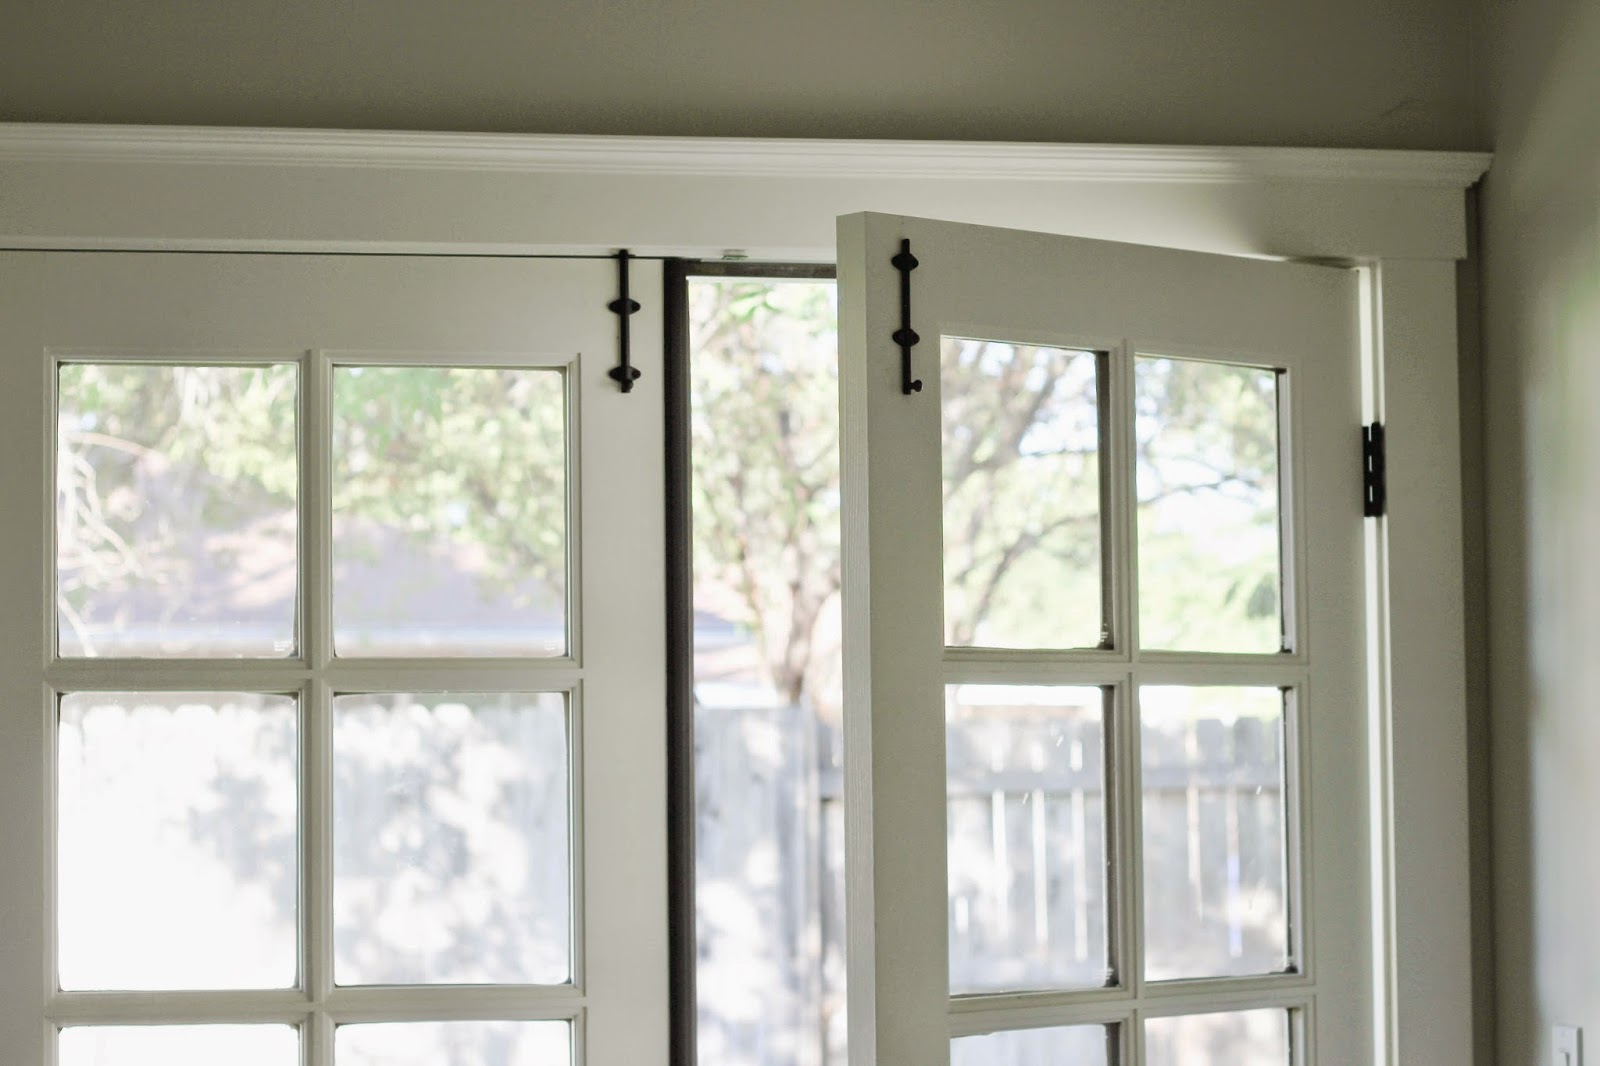 Installing Surface Bolts on French Doors